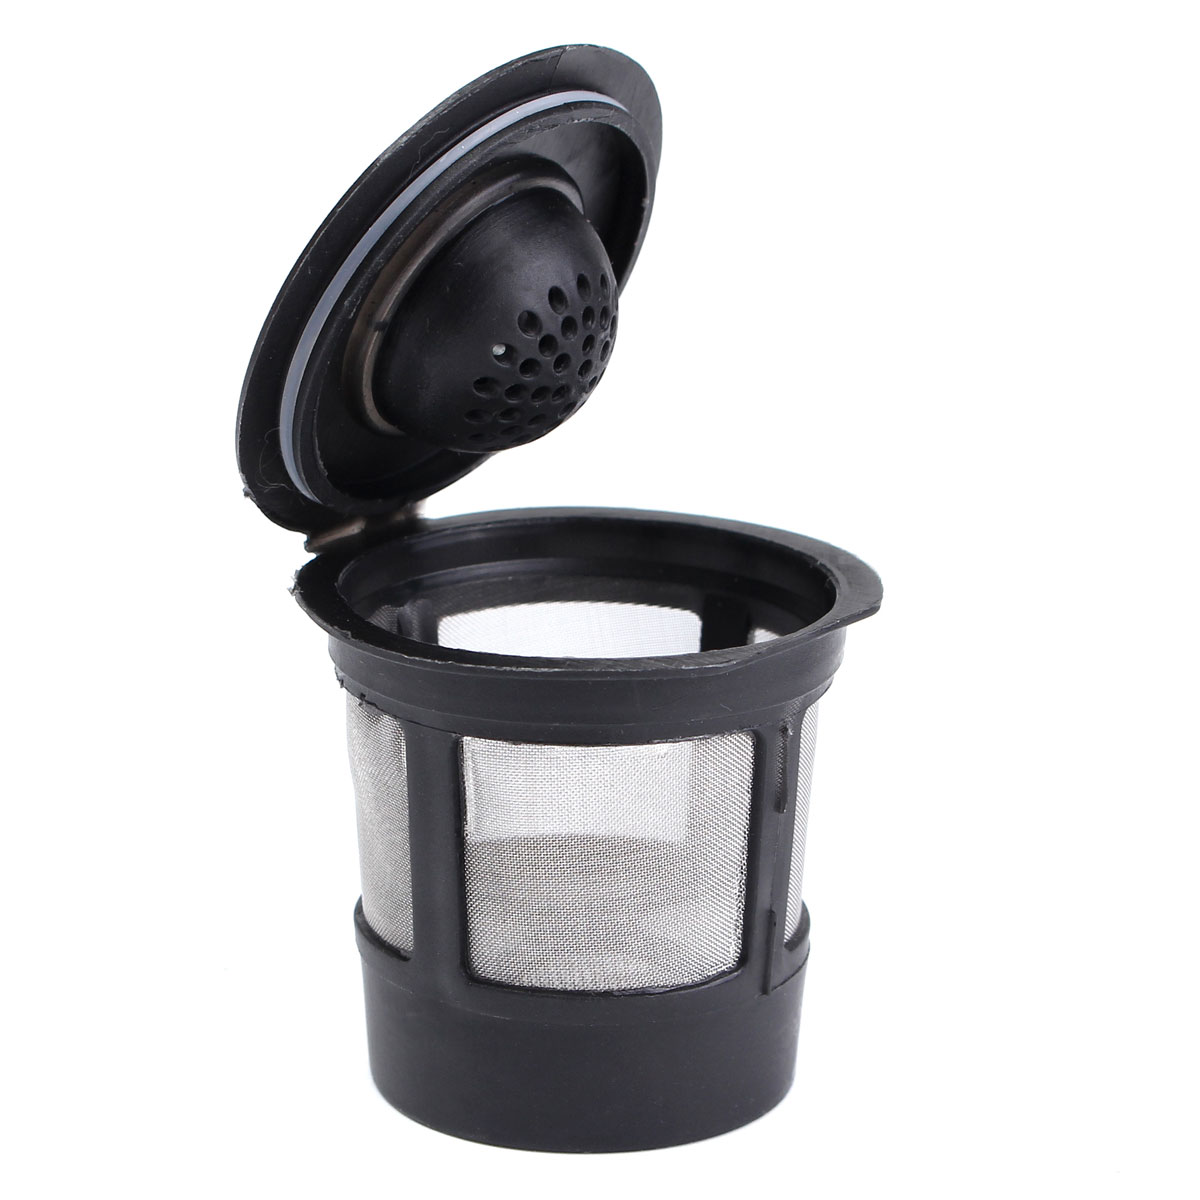 1Pcs Stainless Mesh Black Reusable Single Cup Keurig Solo Filter Pod K-Cup Coffee